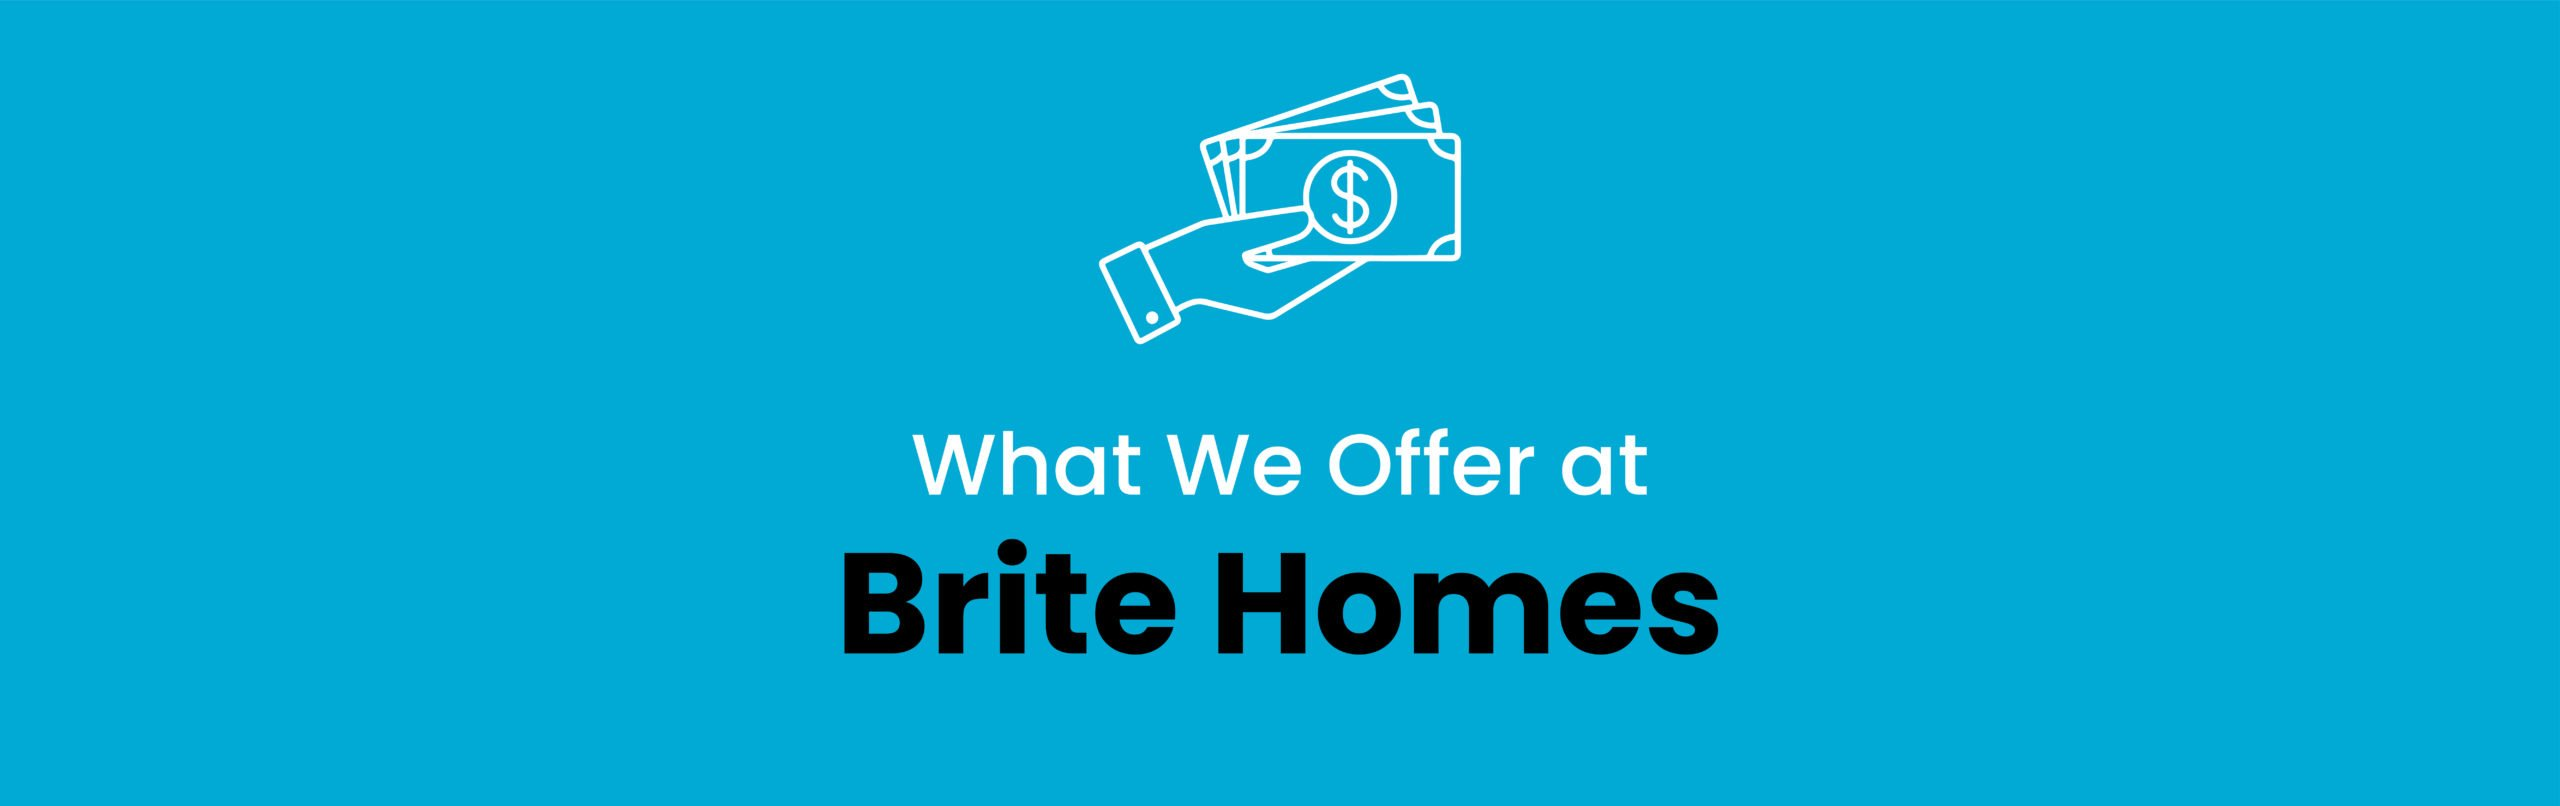 What We Offer at Brite Homes